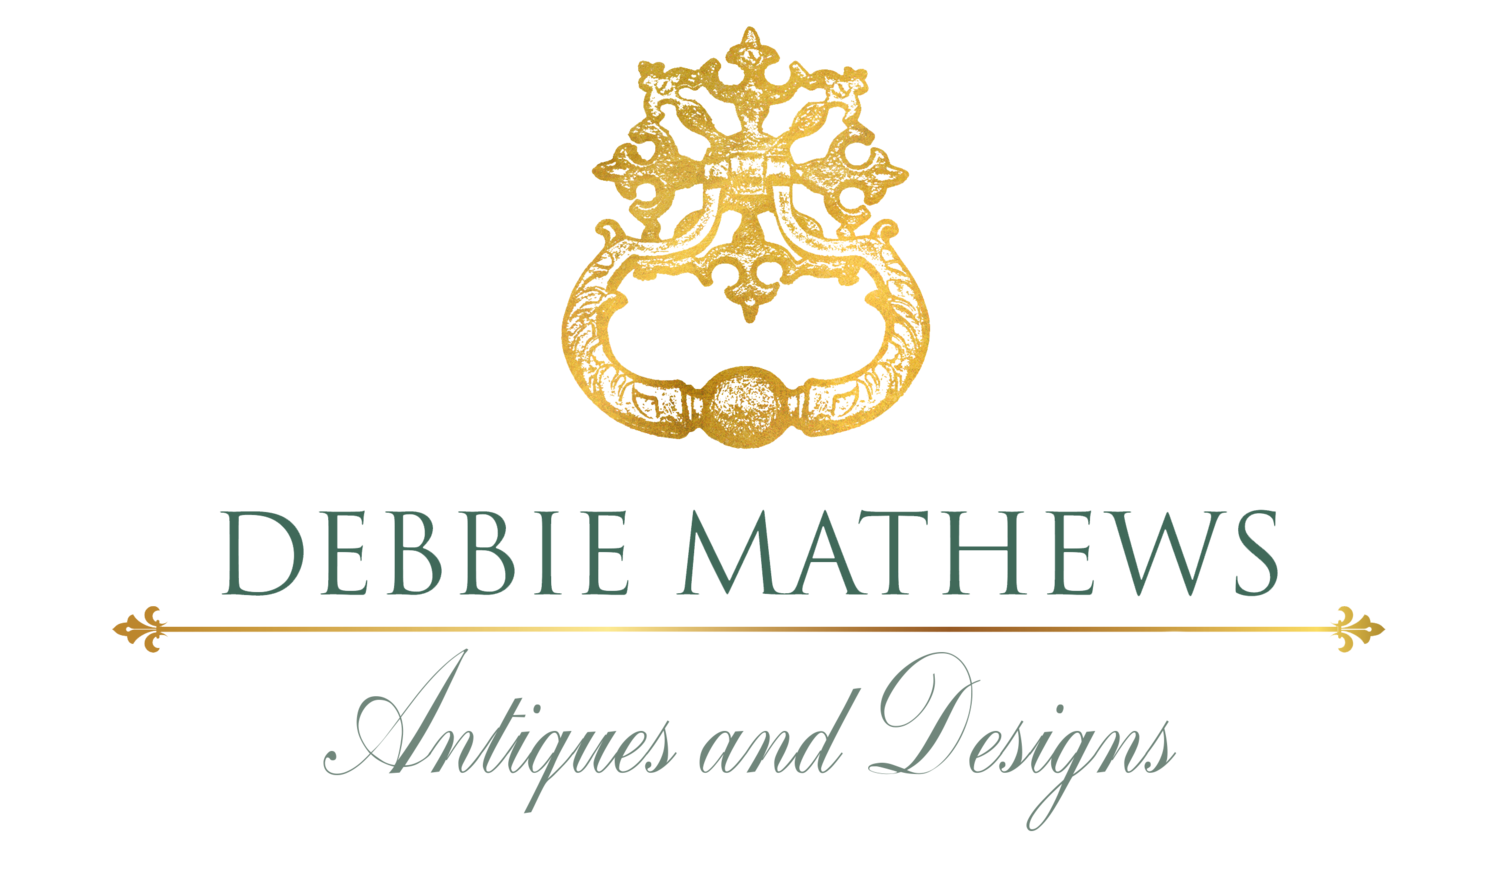 Debbie Mathews